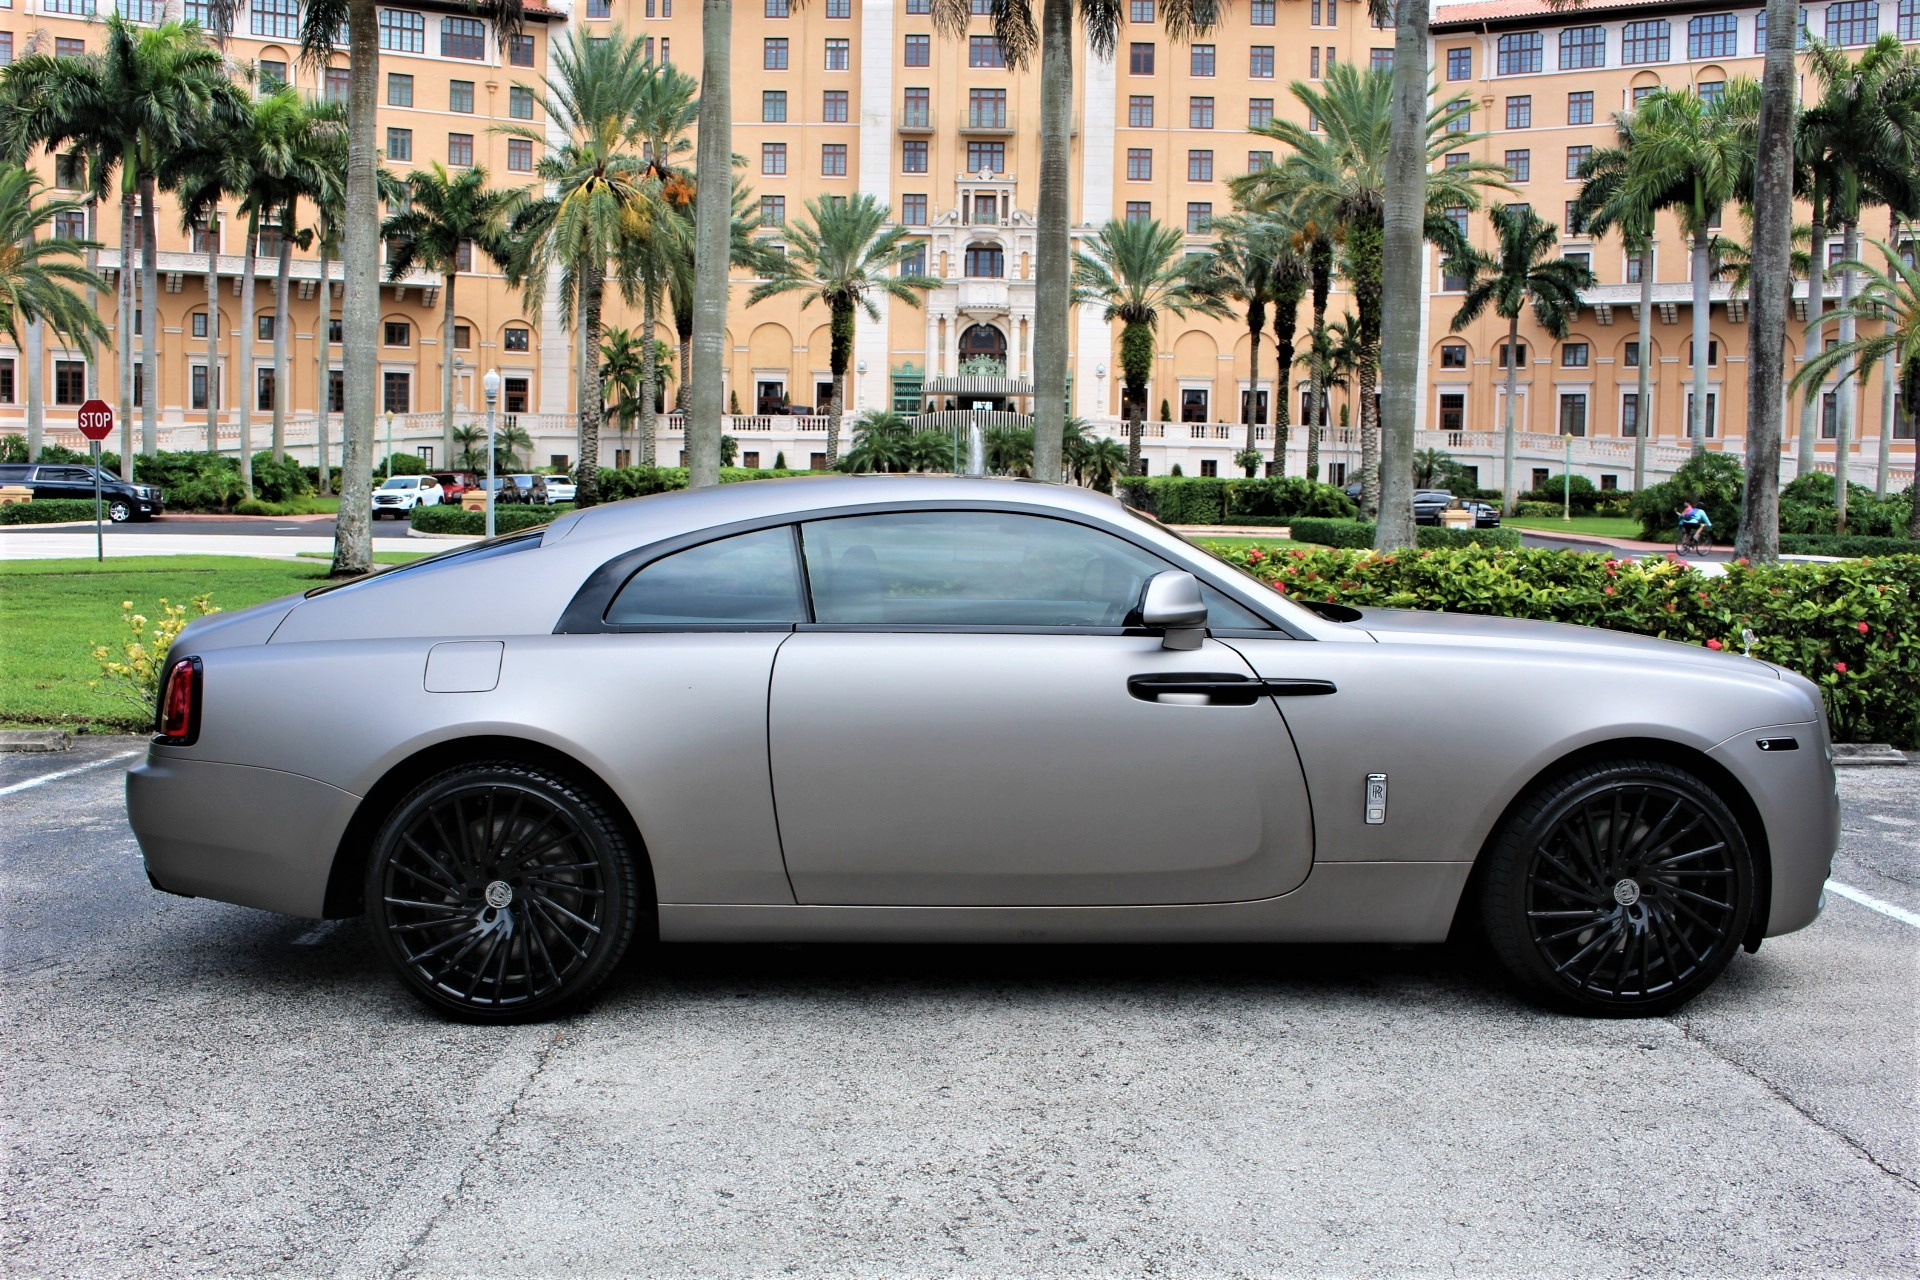 Used 2015 Rolls-Royce Wraith for sale $168,850 at The Gables Sports Cars in Miami FL 33146 2